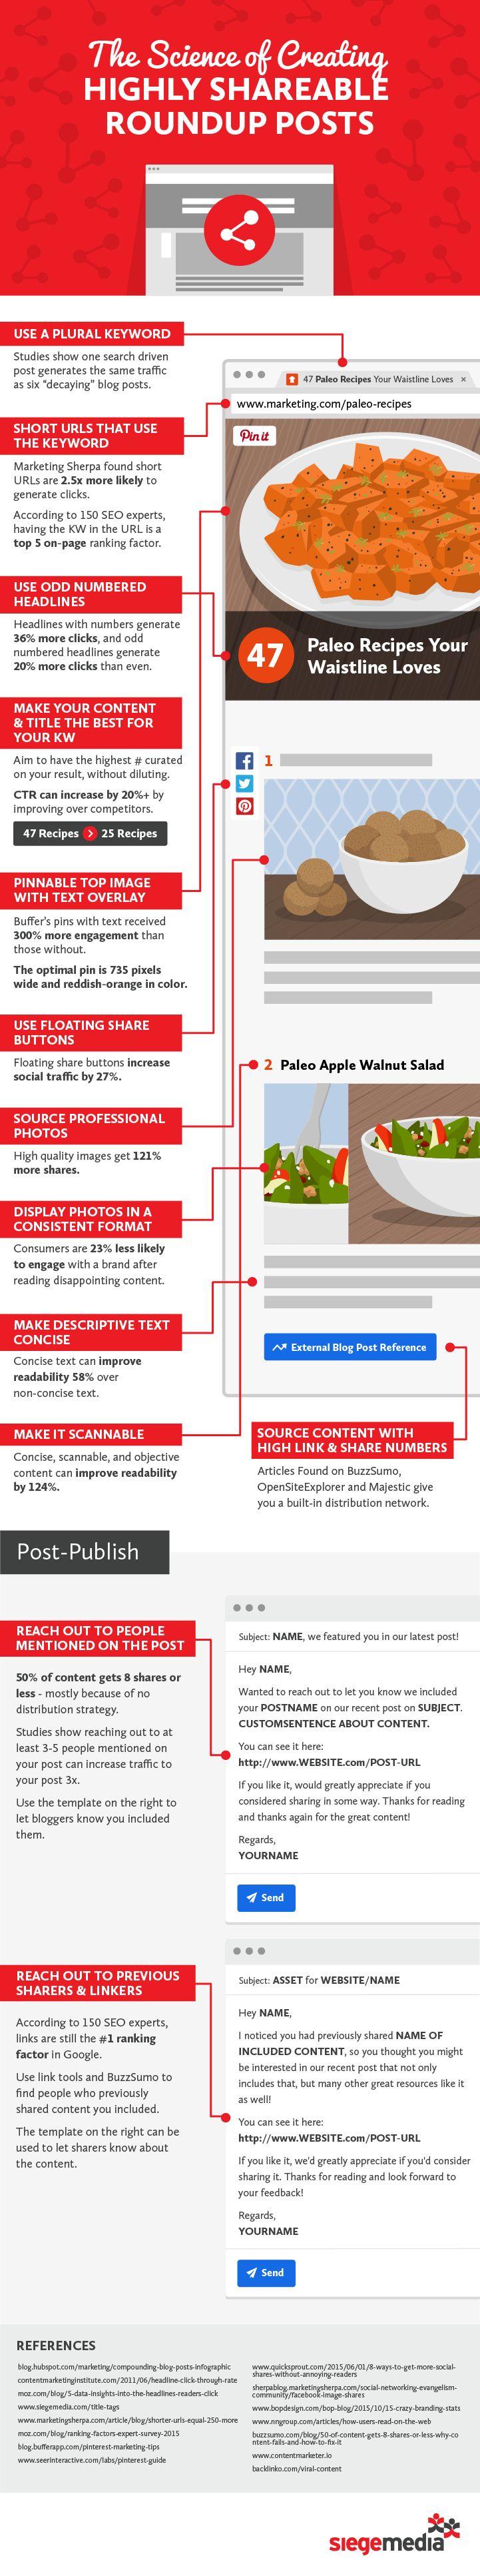 The Anatomy of a Highly Shareable List Post [Infographic]